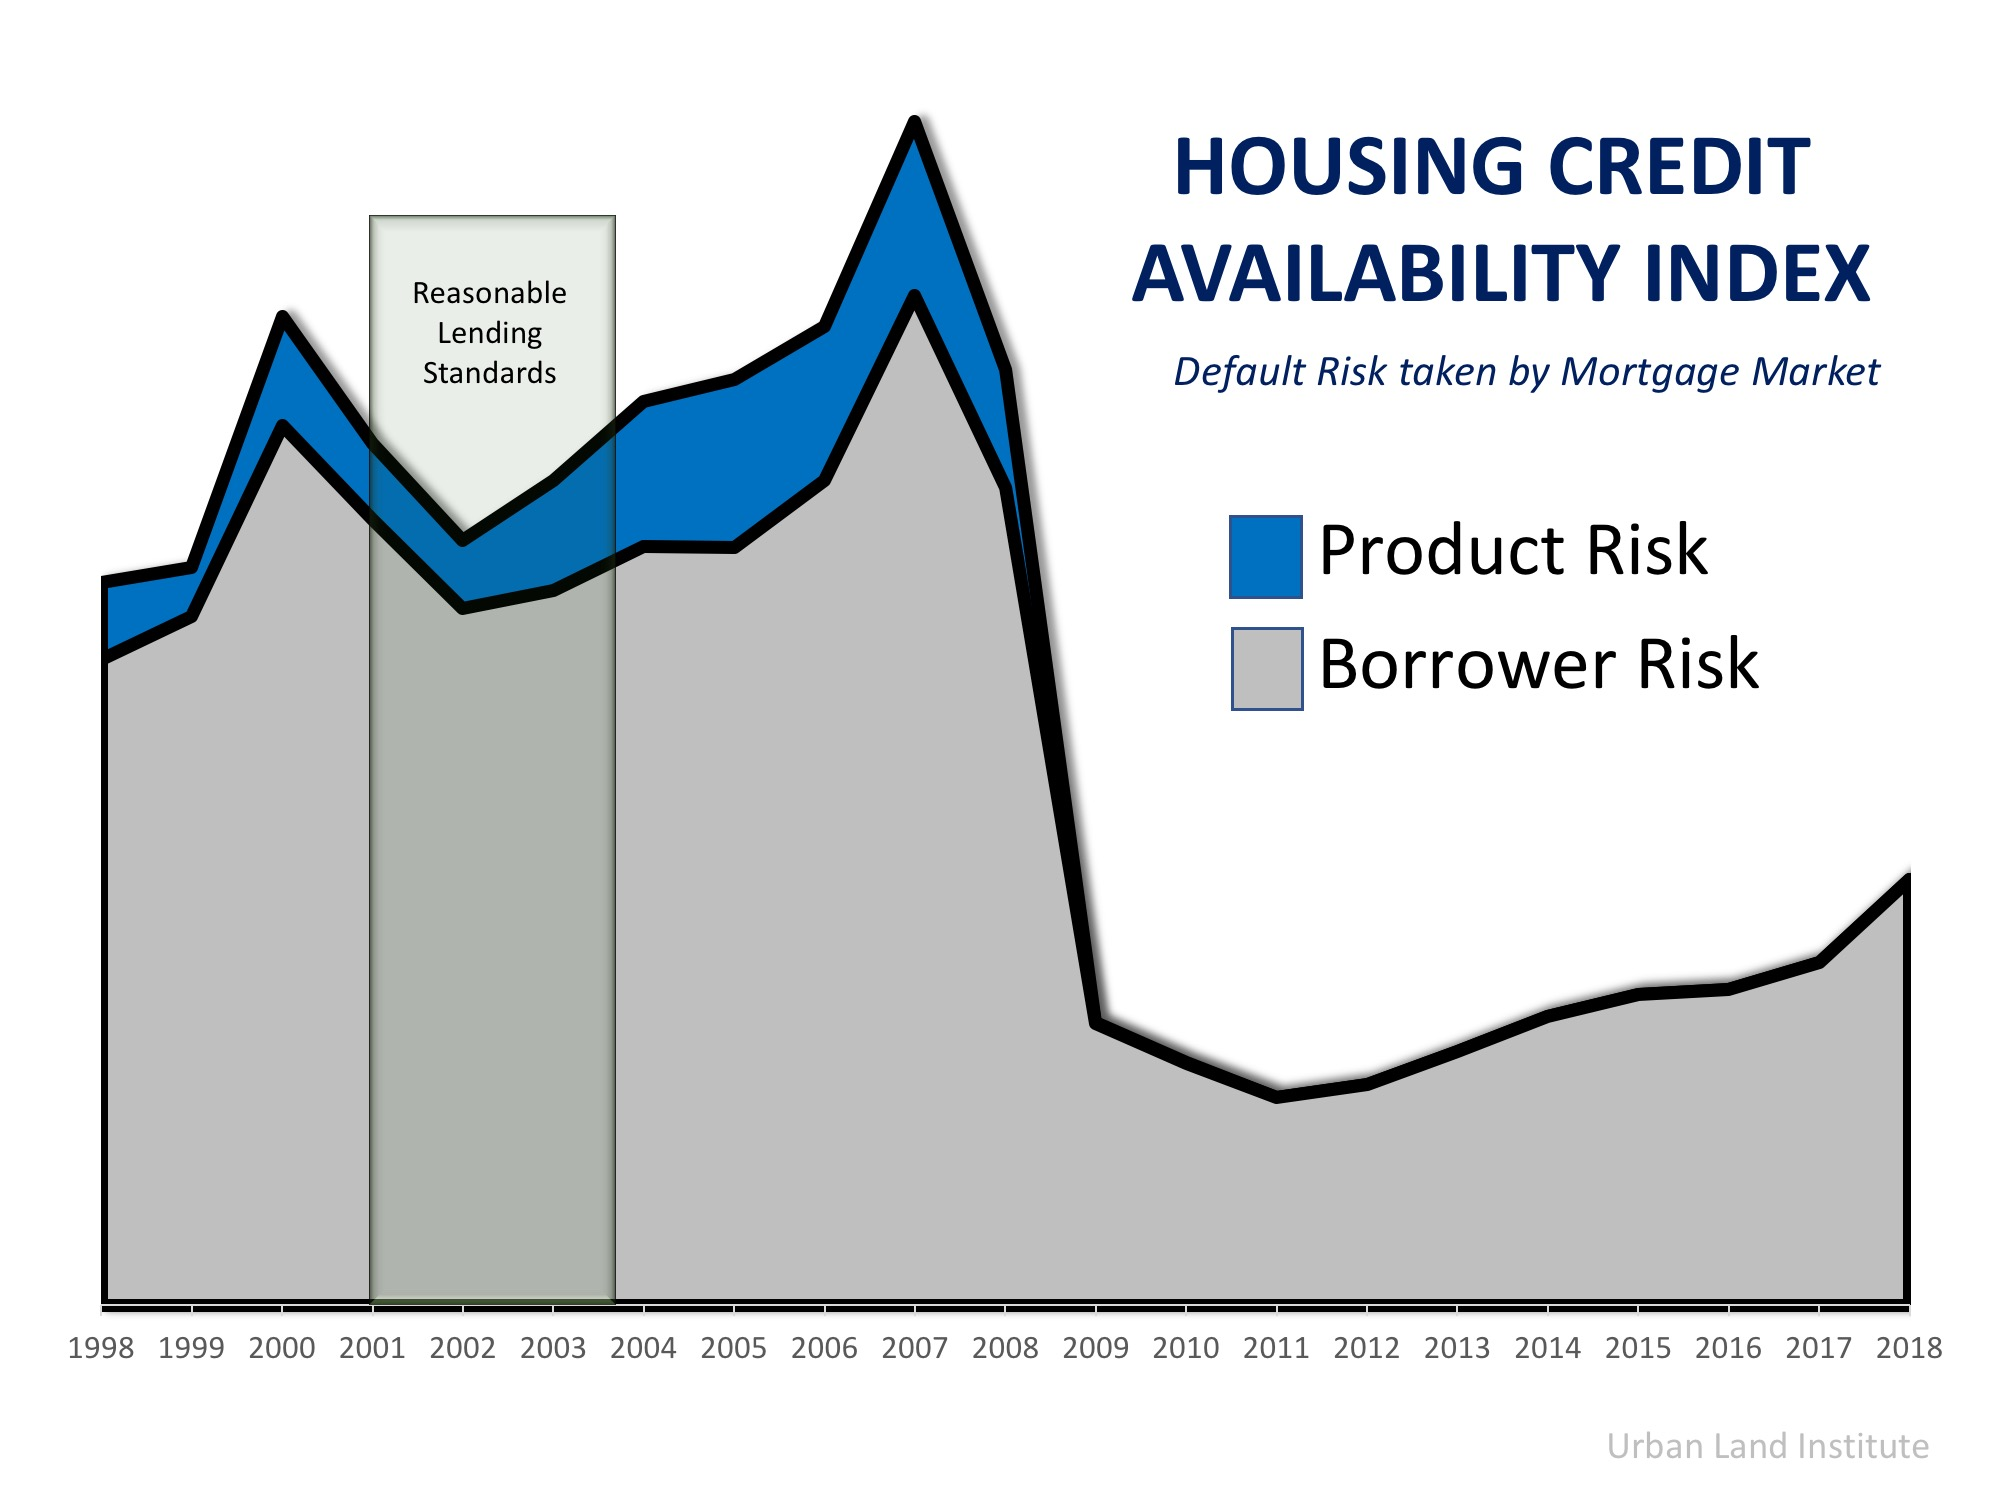 seattle metropolist housing credit availability index real estate